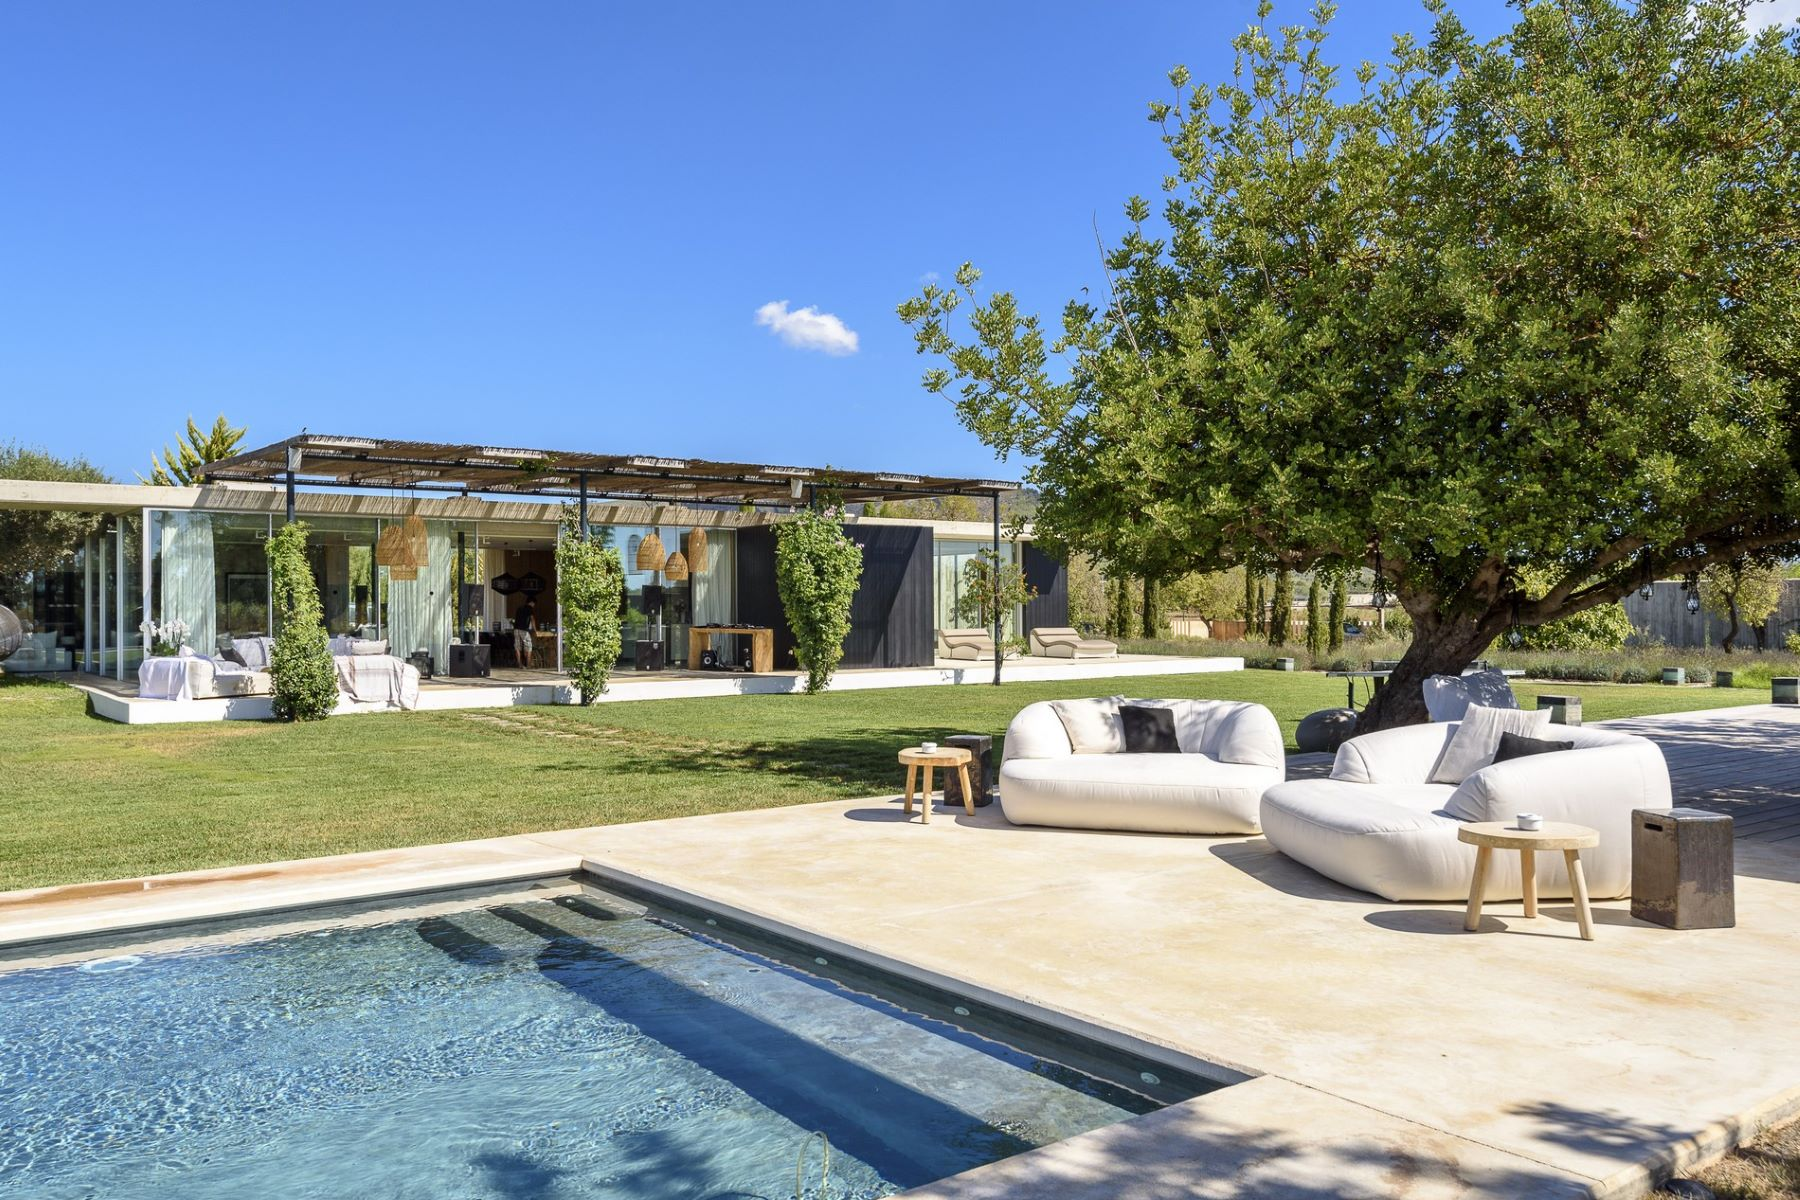 Single Family Home for Rent at Modern Design Villa in Ibiza San Juan, Ibiza, 07812 Spain